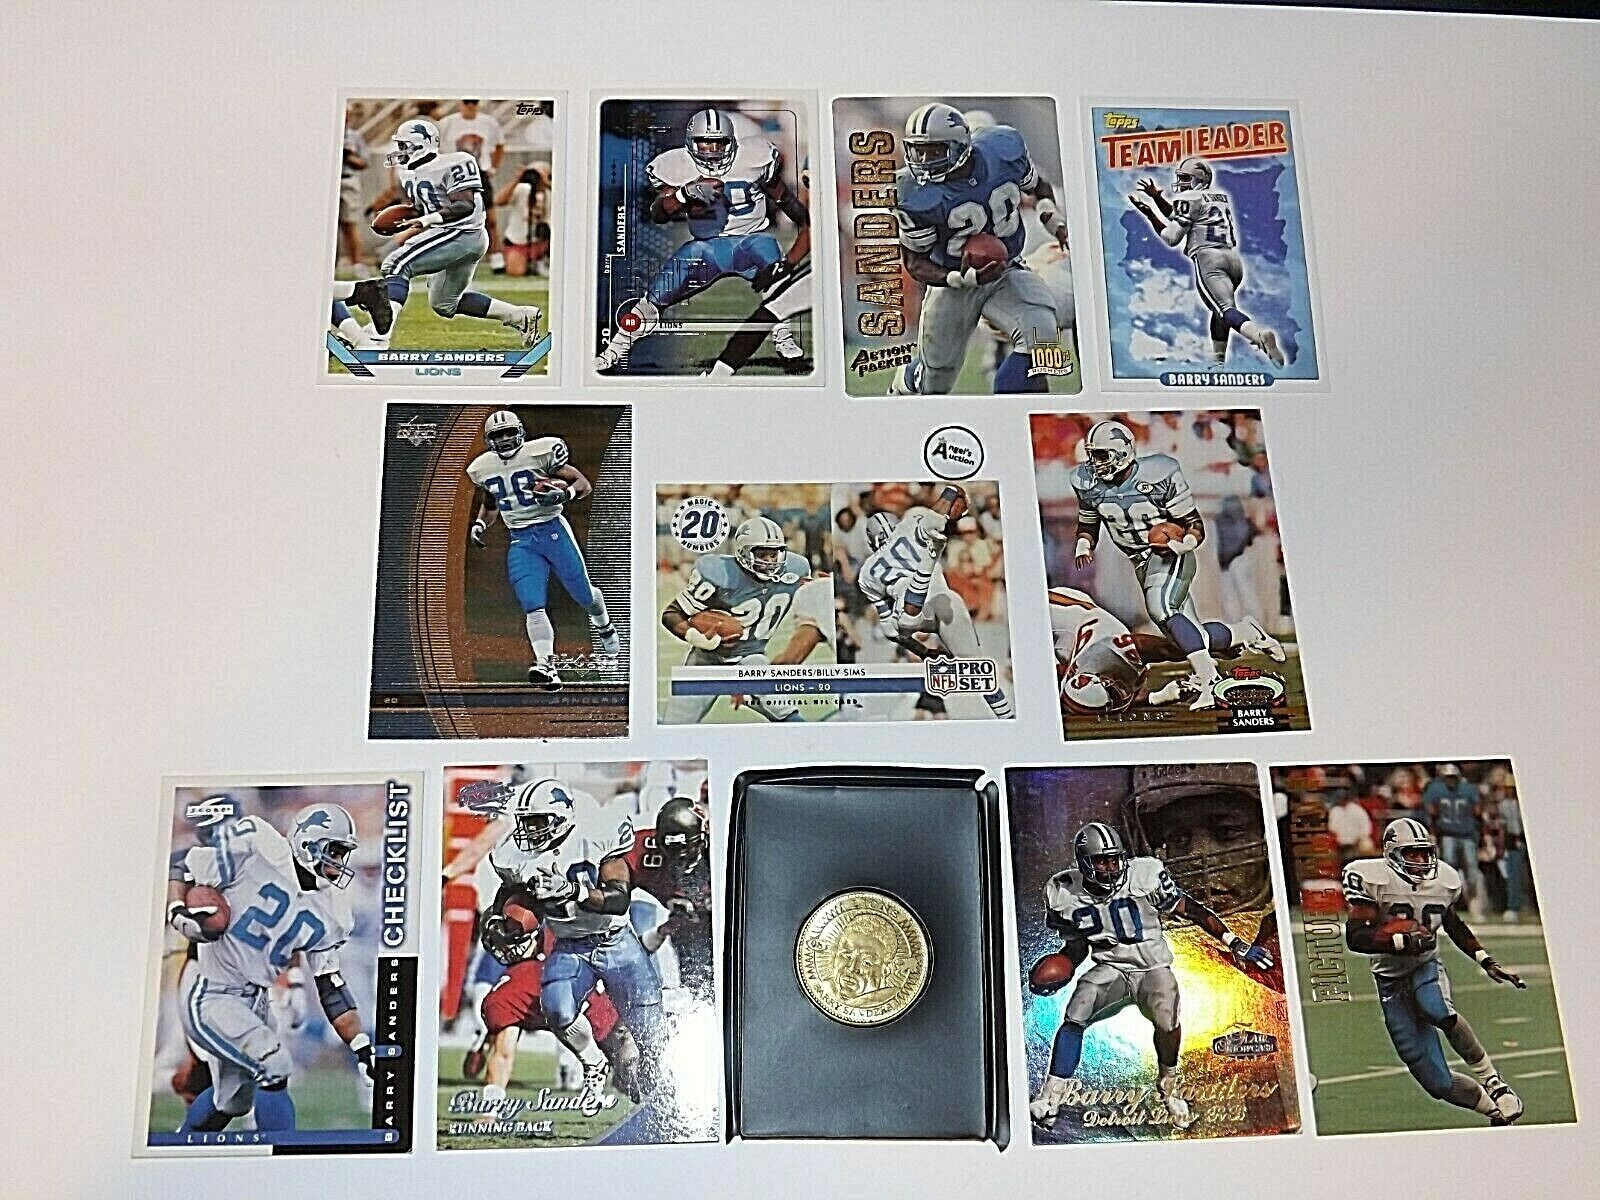 Barry Sanders #20 RB Detroit Lions Football Trading Cards AA-191698 Vintage Col